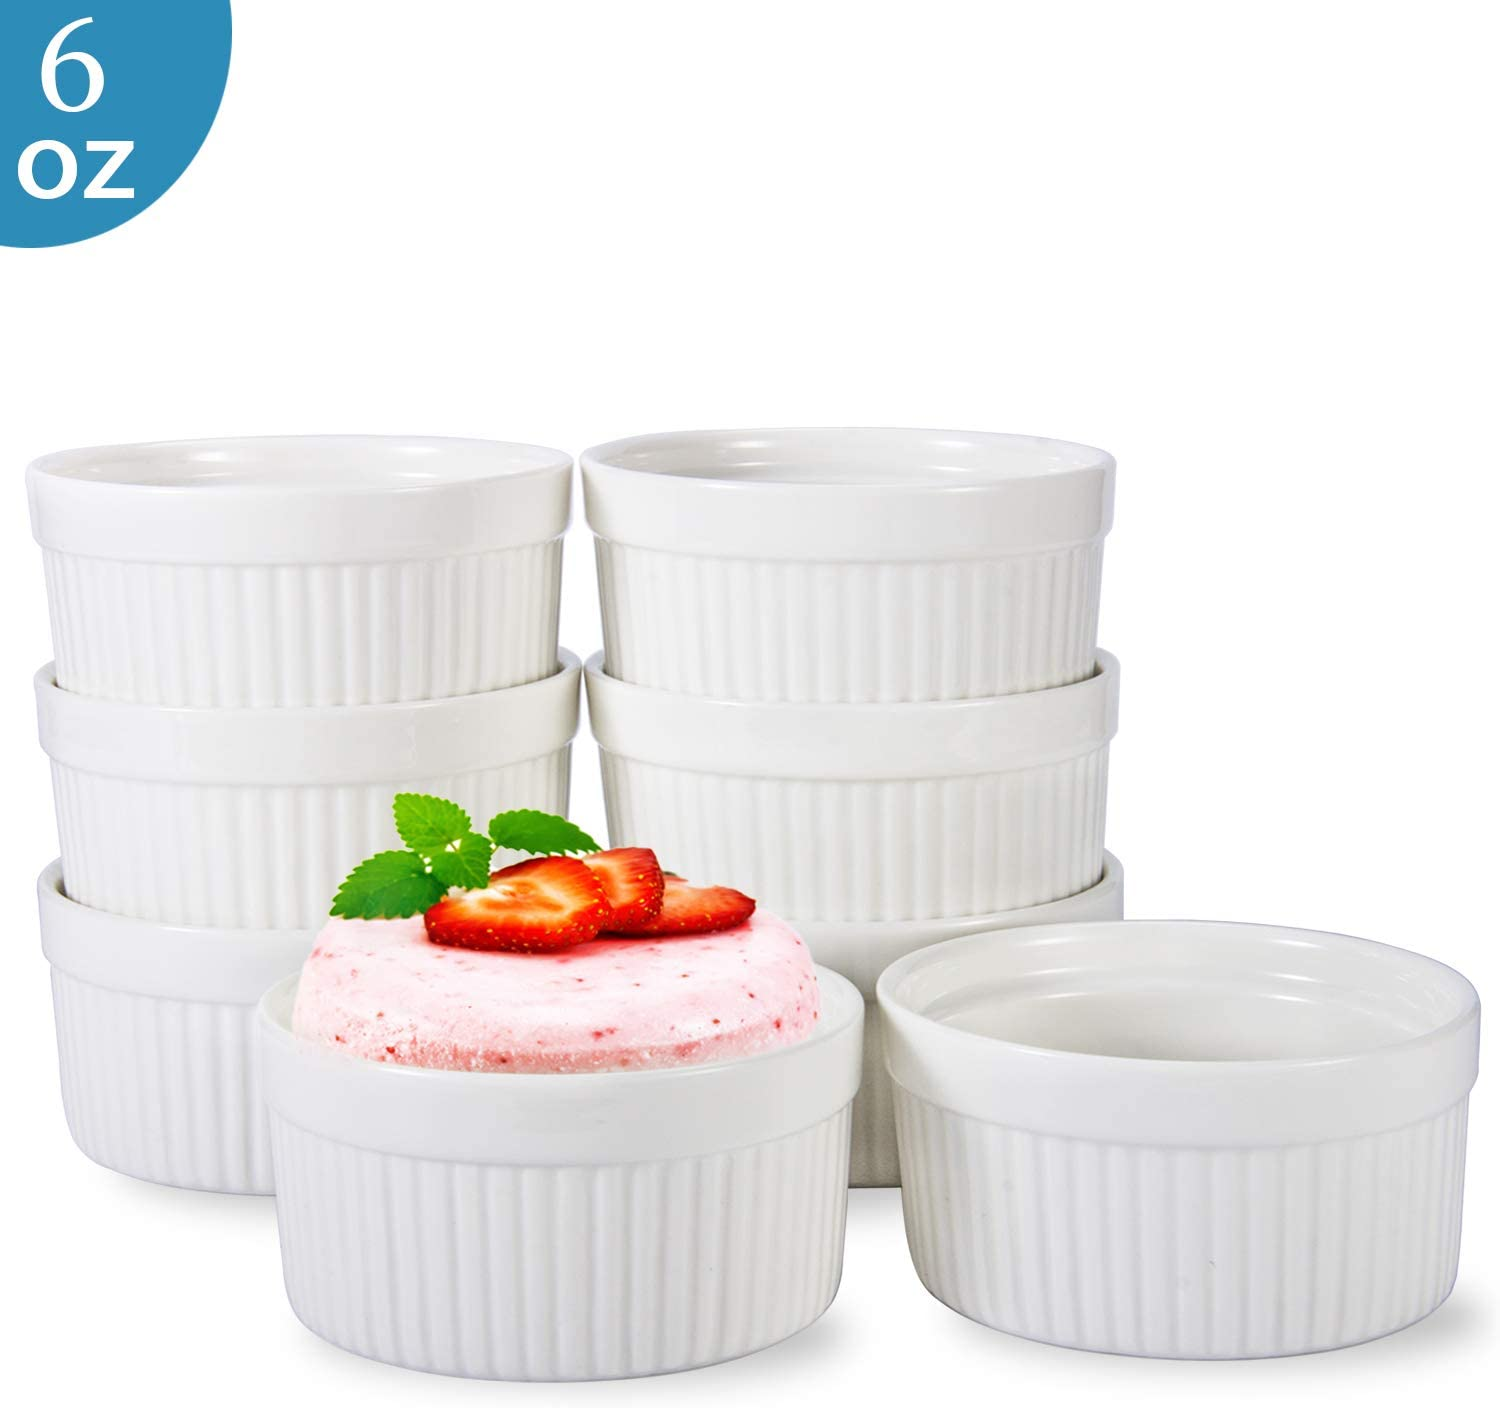 6 OZ Ramekin Bowls 8 PCS,Bakeware Set for Baking and Cooking, Oven Safe Sleek Porcelain White Ramikins for Pudding, Creme Brulee, Custard Cups and Souffle Small instant table tray (6OZ White)